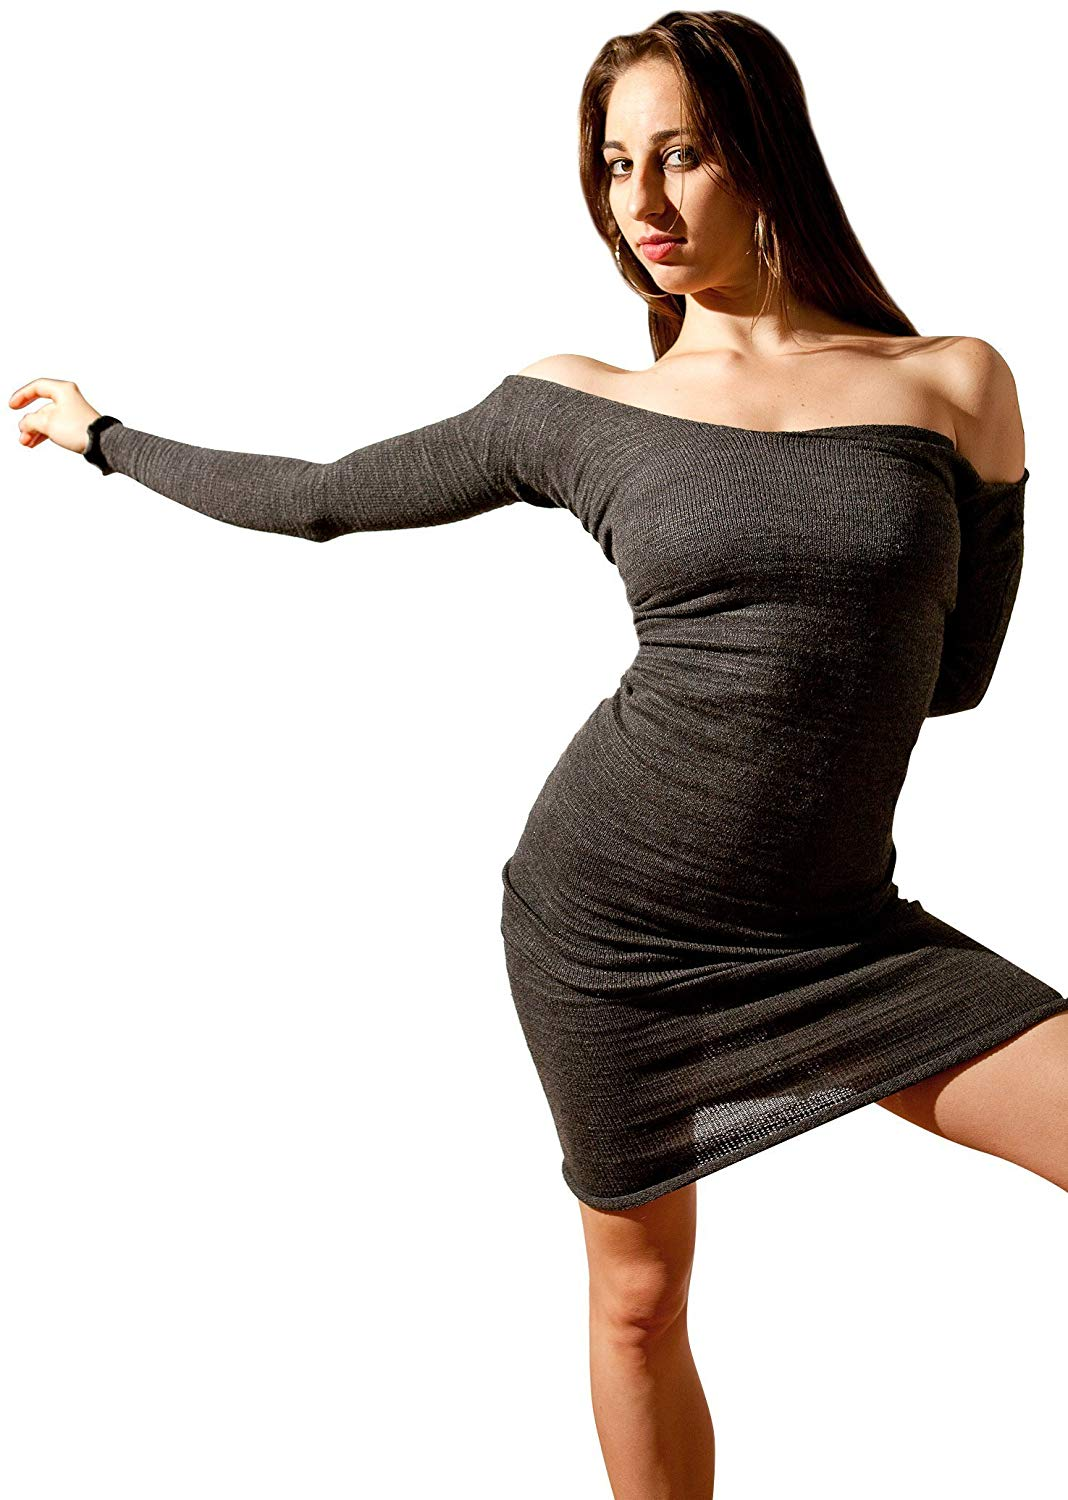 c599f071e365f Get Quotations · Knee High Dance Dress by KD dance NYC Stretch Knit Cozy,  Warm & Durable